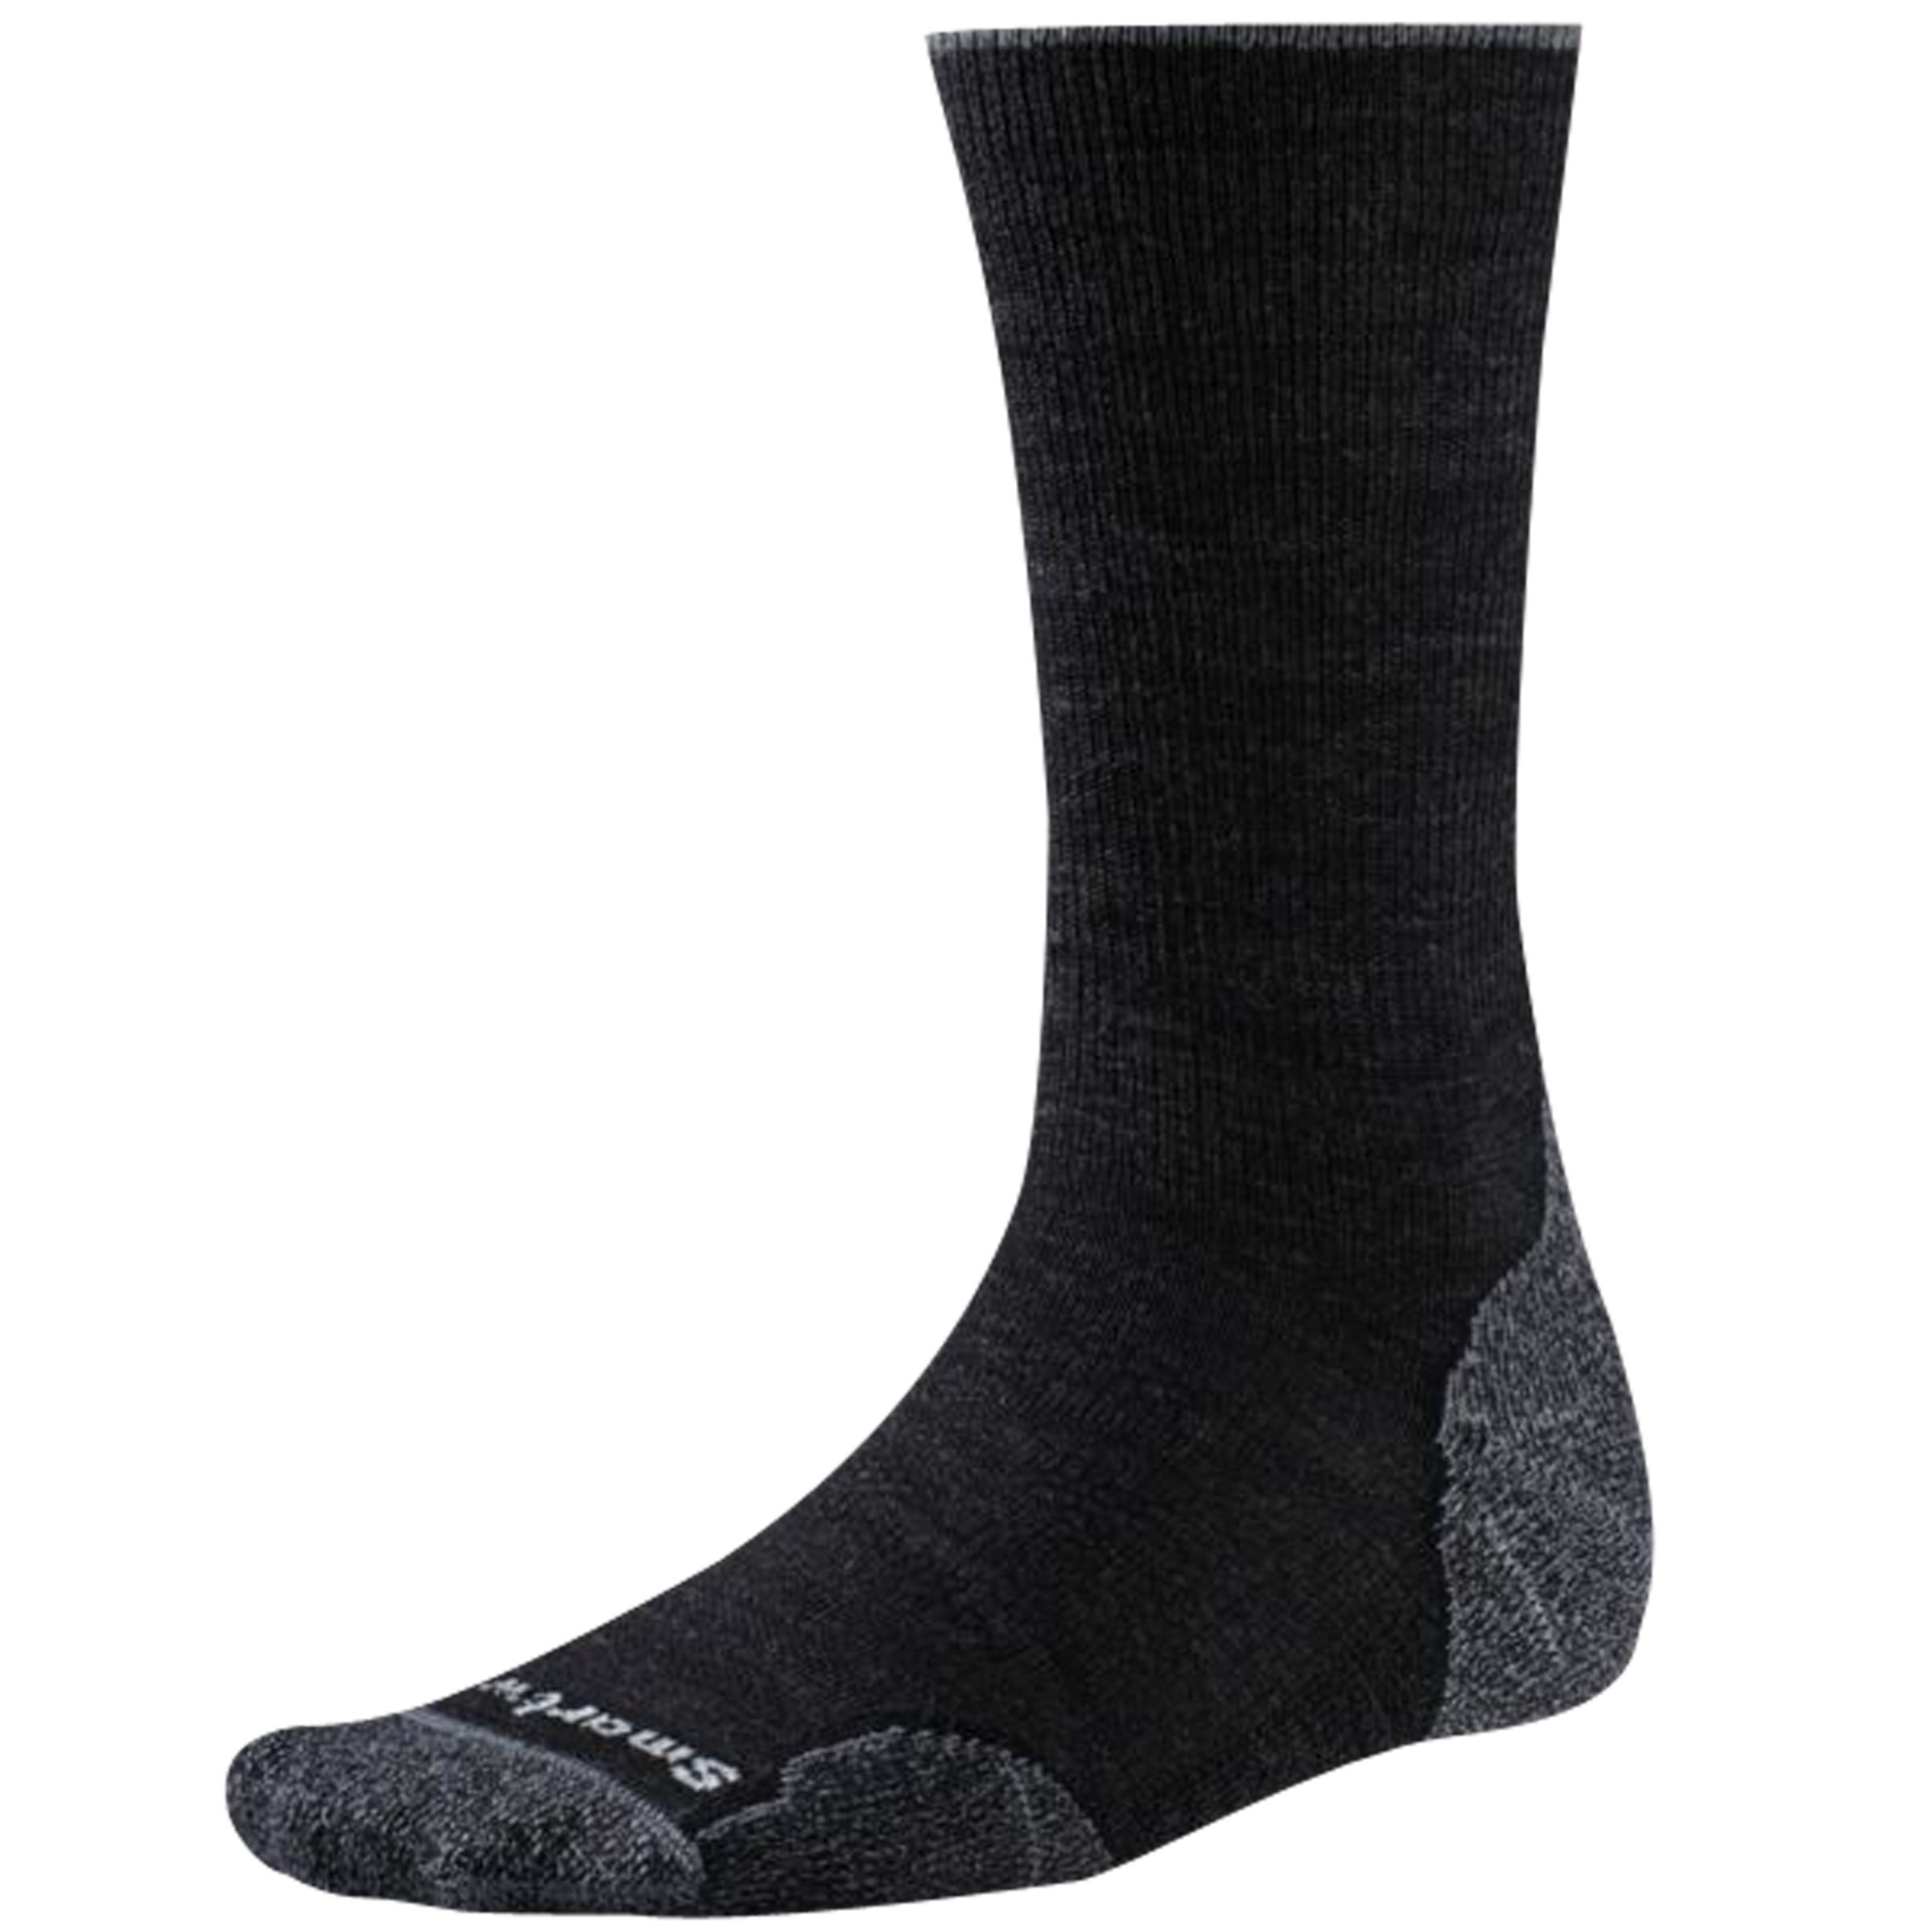 Smartwool SmartWool PhD Outdoor Light Crew Socks, Charcoal